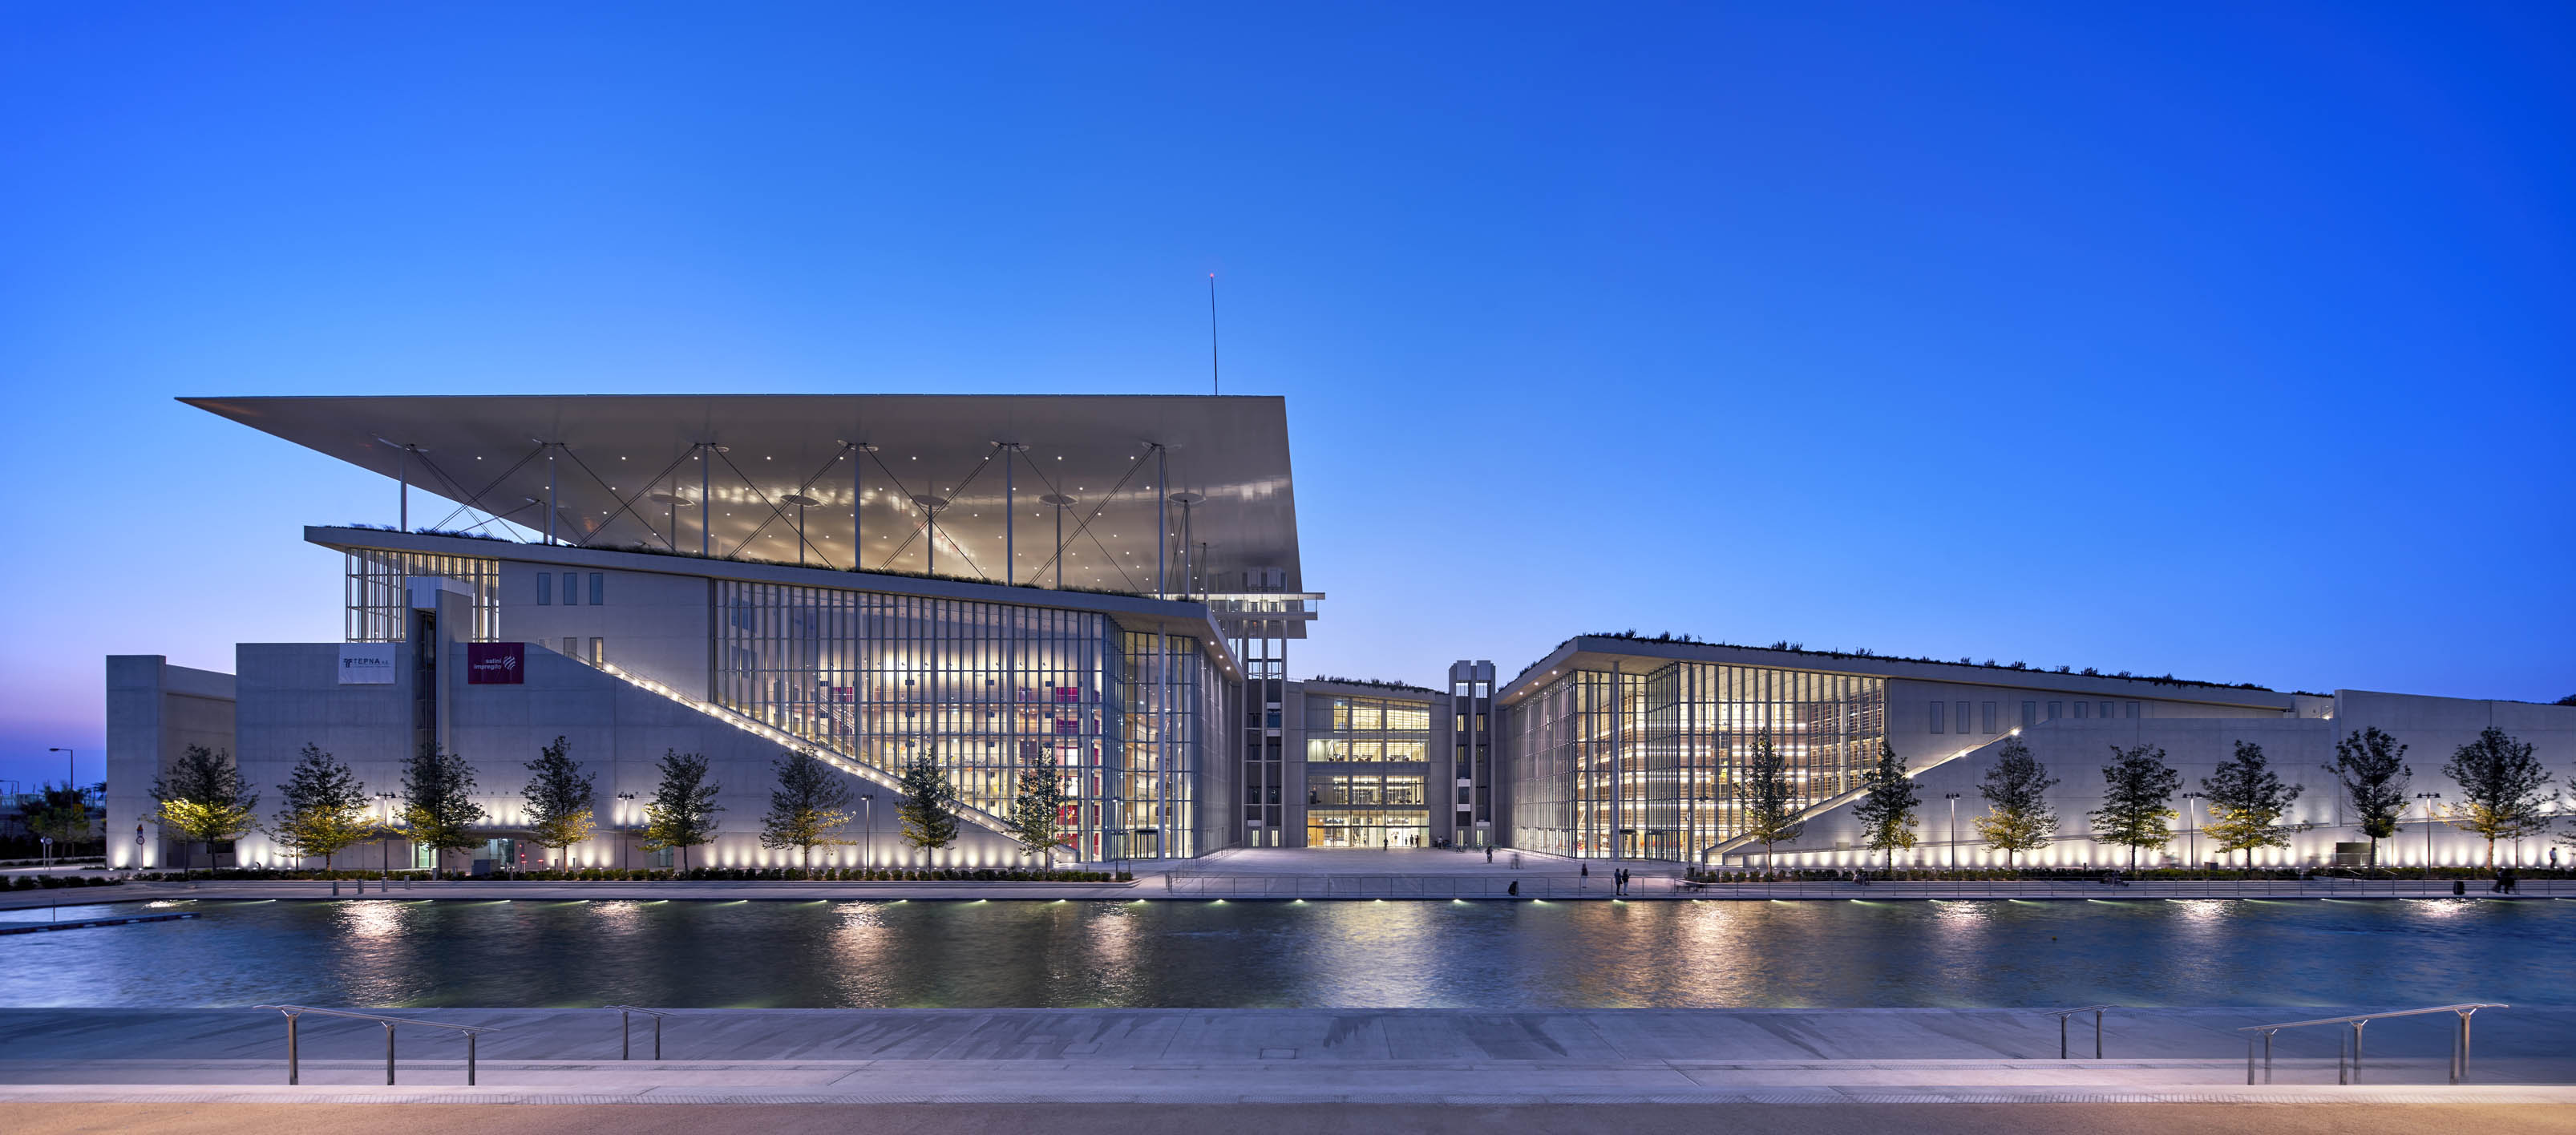 Stavros Niarchos Foundation Cultural Center (photo by Michel Denancé)